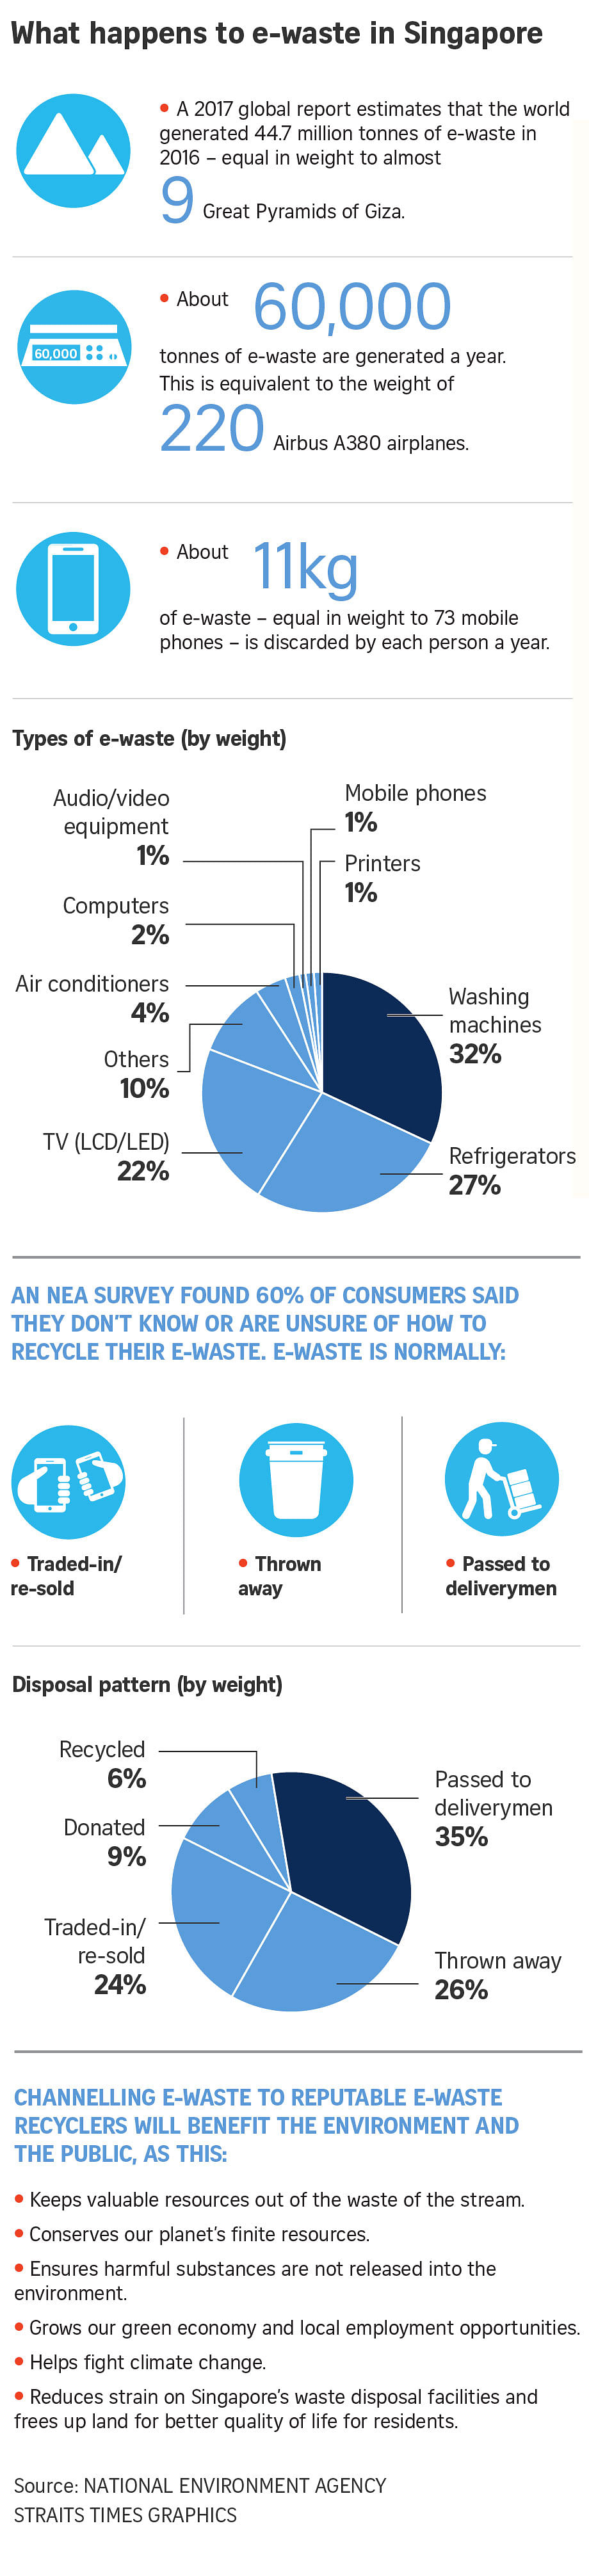 What happens to e-waste in Singapore